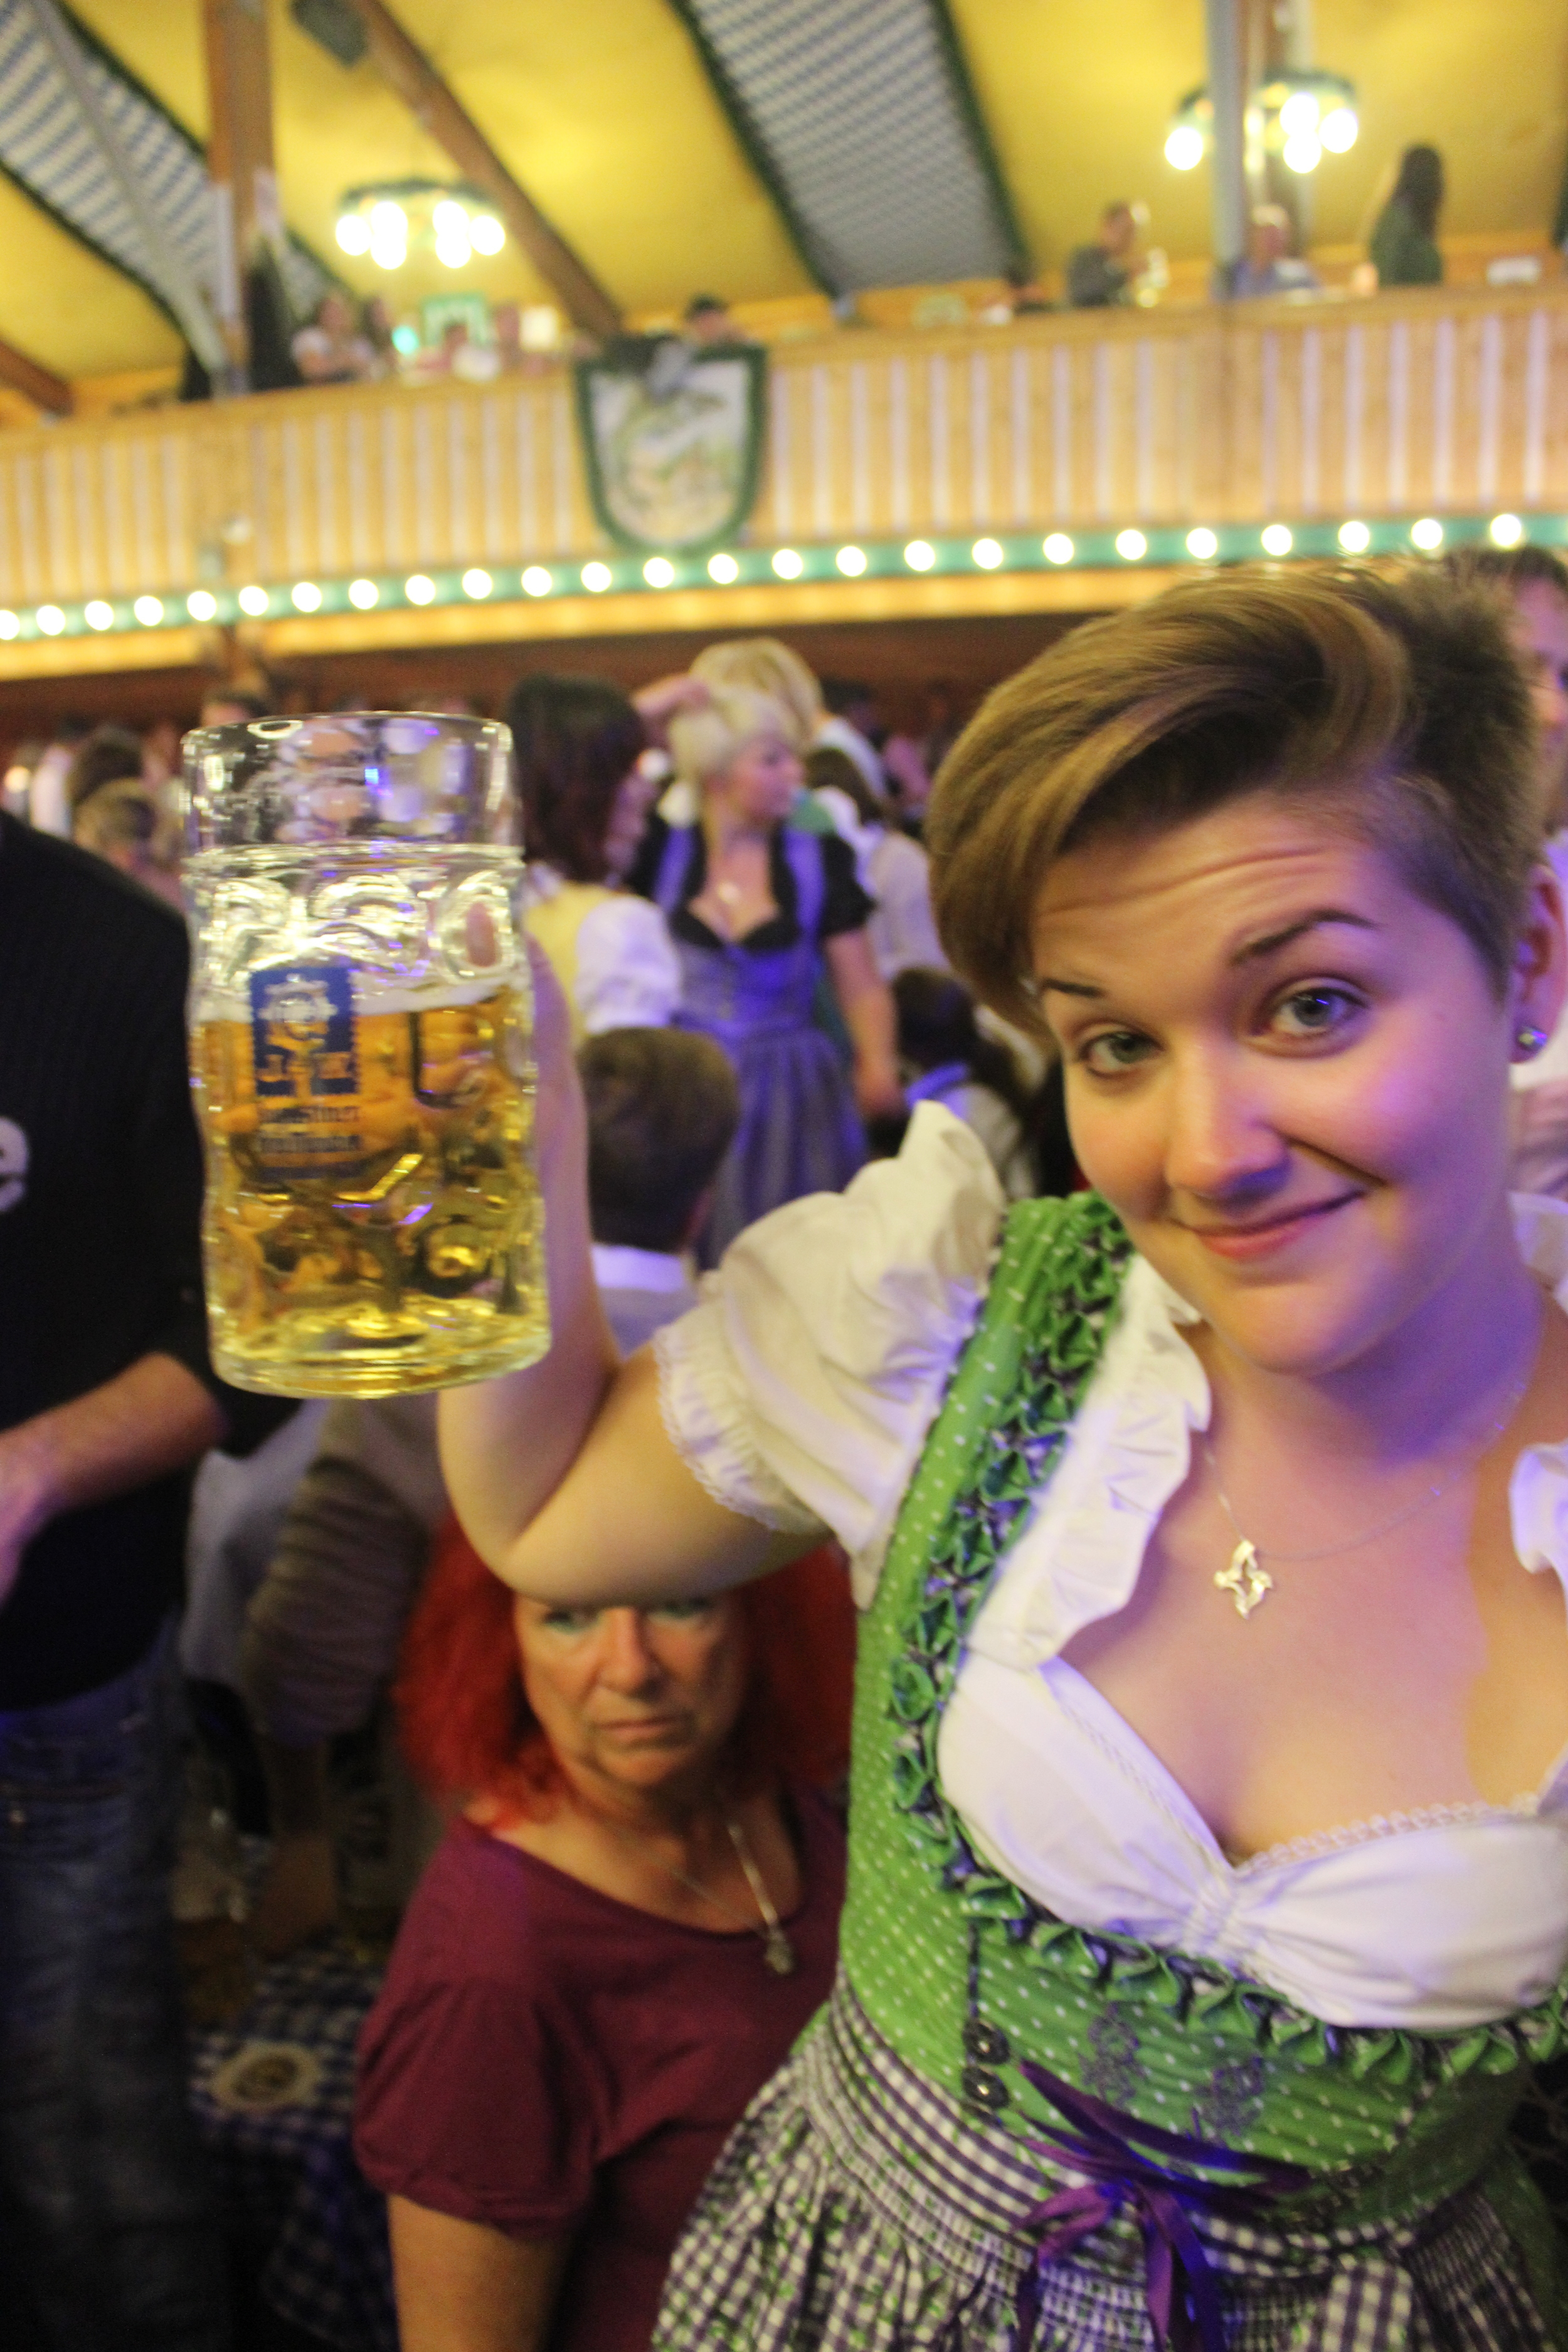 Yea, I probably would not have gotten much additional use out of this dirndl :)